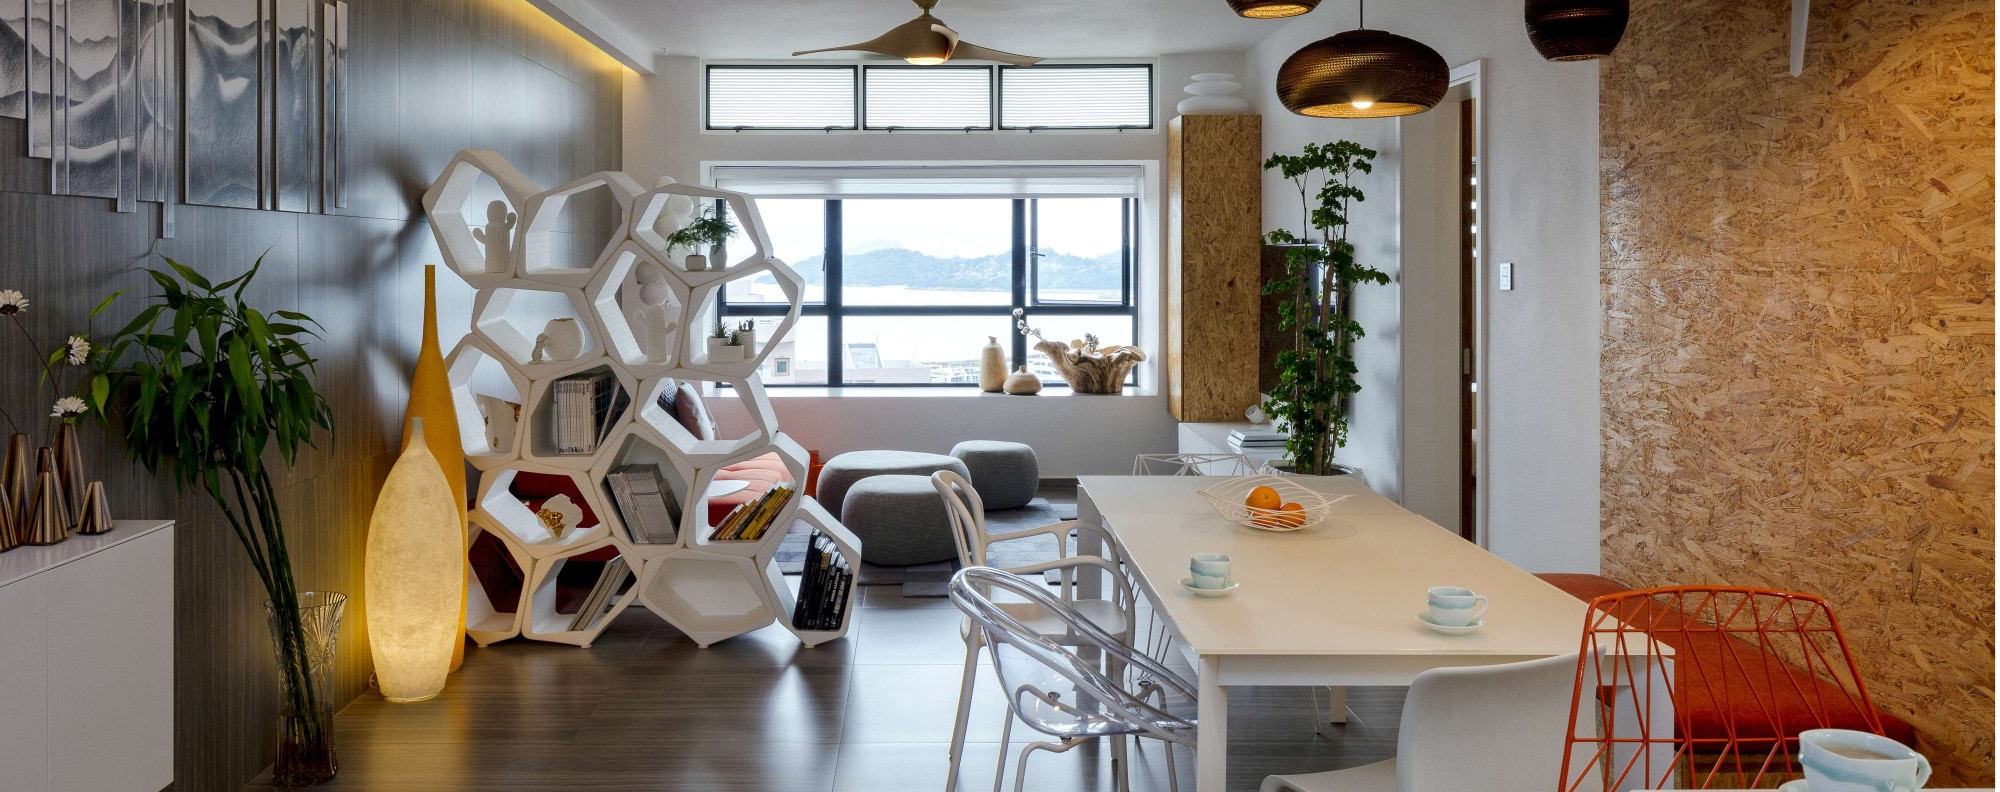 Hong Kong Apartment Interior Architect Gives His Hong Kong Apartment Eco Friendly